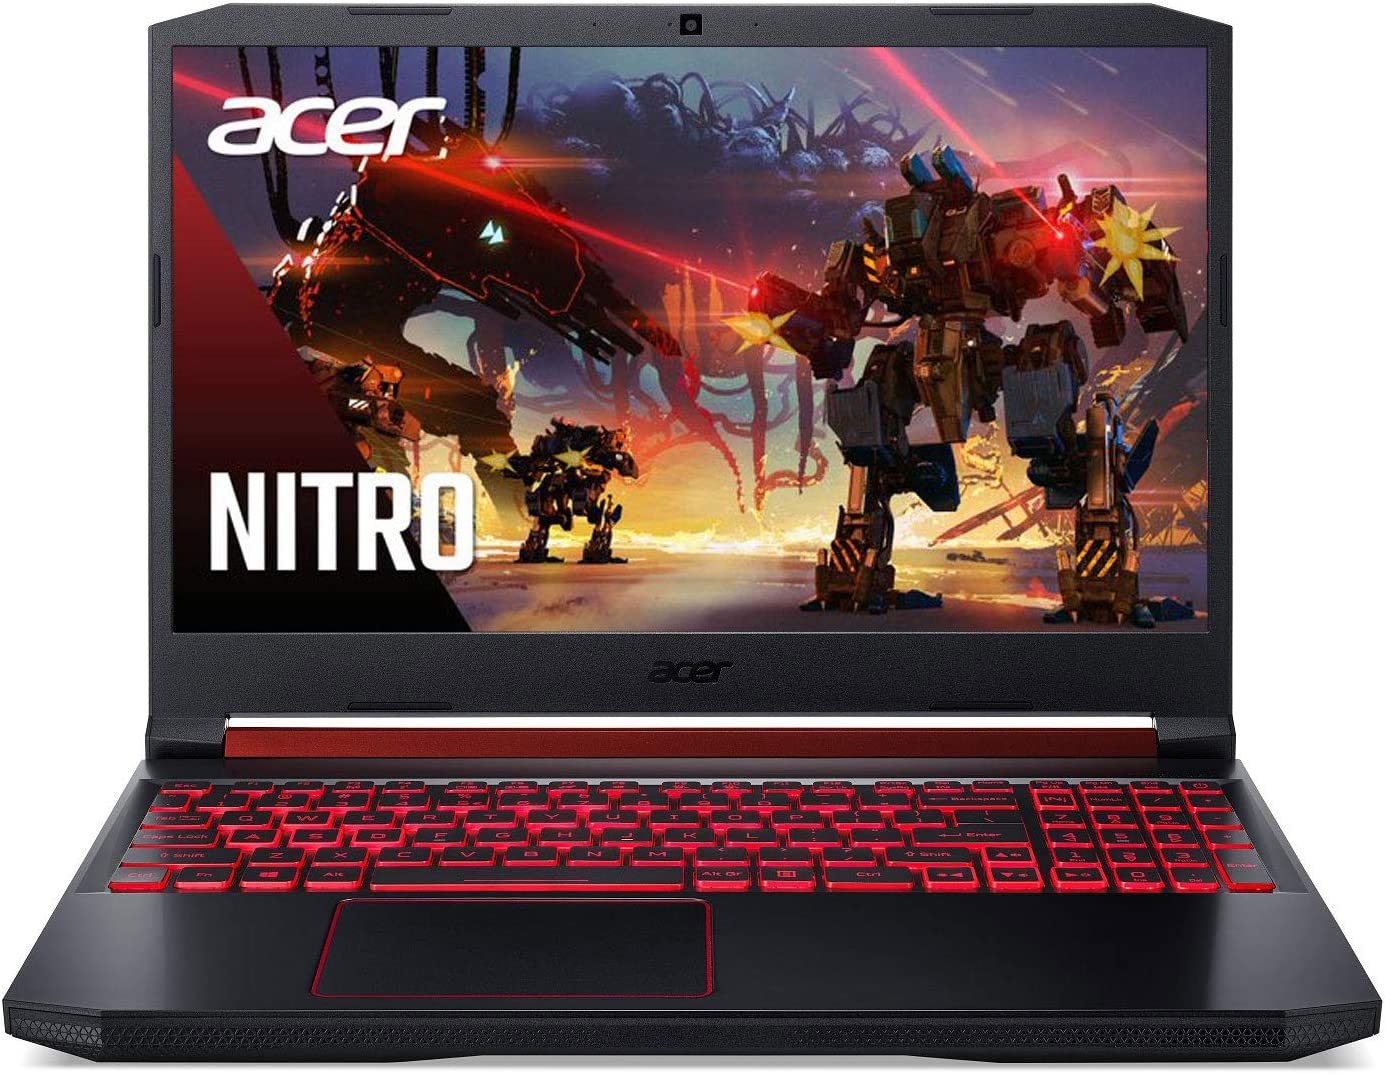 "Acer Nitro 5 Gaming Laptop, 9th Gen Intel Core i7-9750H, NVIDIA GeForce RTX 2060, 15.6"" Full HD IPS 144Hz Display, 16GB DDR4, 256GB NVMe SSD, WiFi 6, Waves MaxxAudio, Backlit Keyboard, AN515-54-728C"